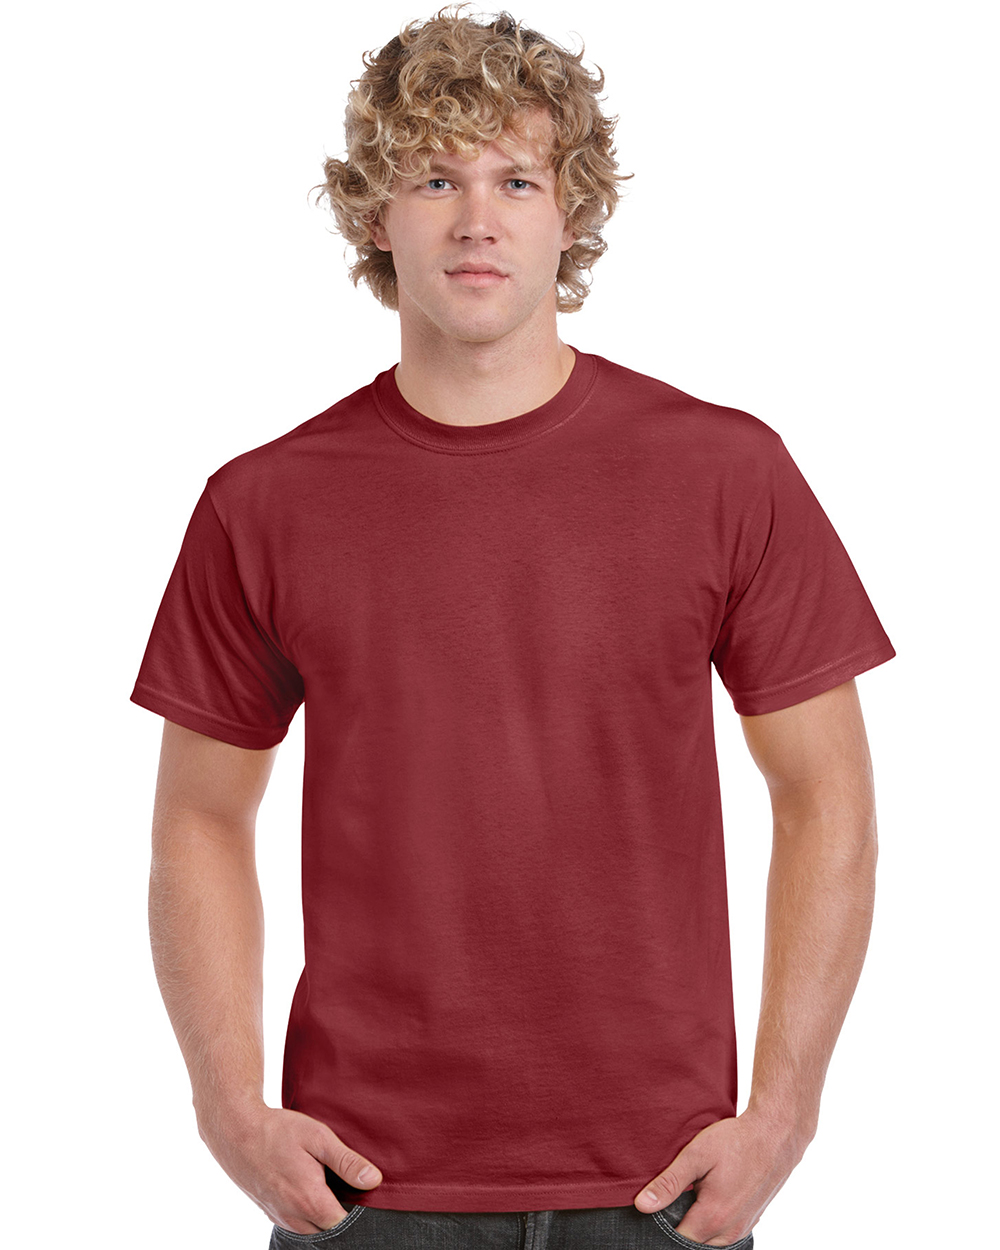 Gildan   5000     Heavy Cotton  ™    Classic Fit Adult T-Shirt    5.3 oz 100% Cotton